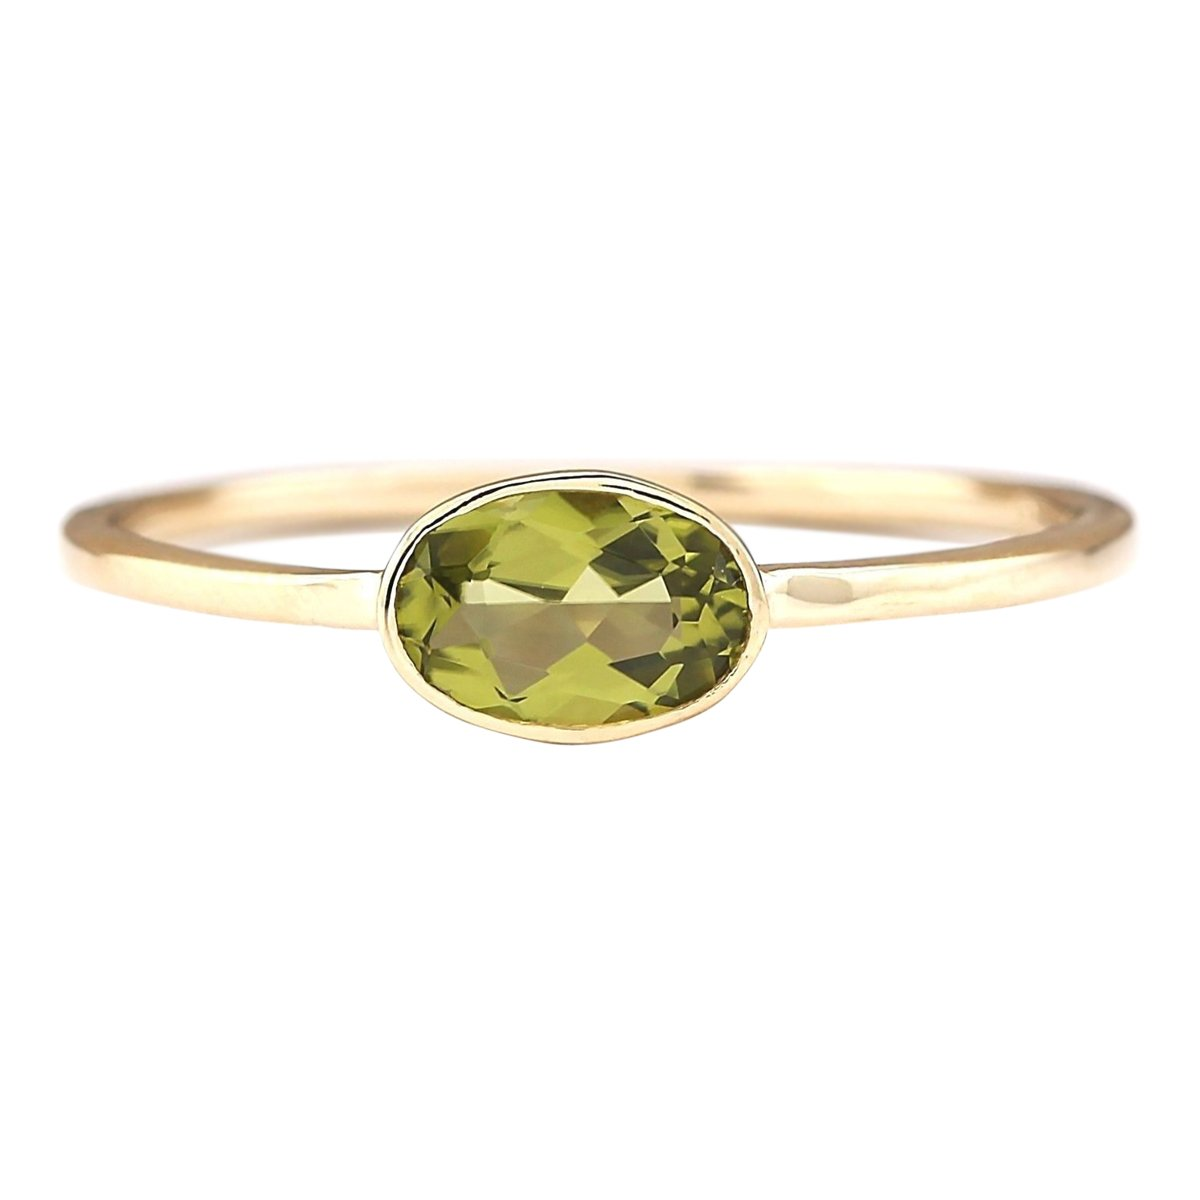 0.6 Carat Natural Green Peridot 14K Yellow Gold Solitaire Promise Ring for Women Exclusively Handcrafted in USA by Unknown